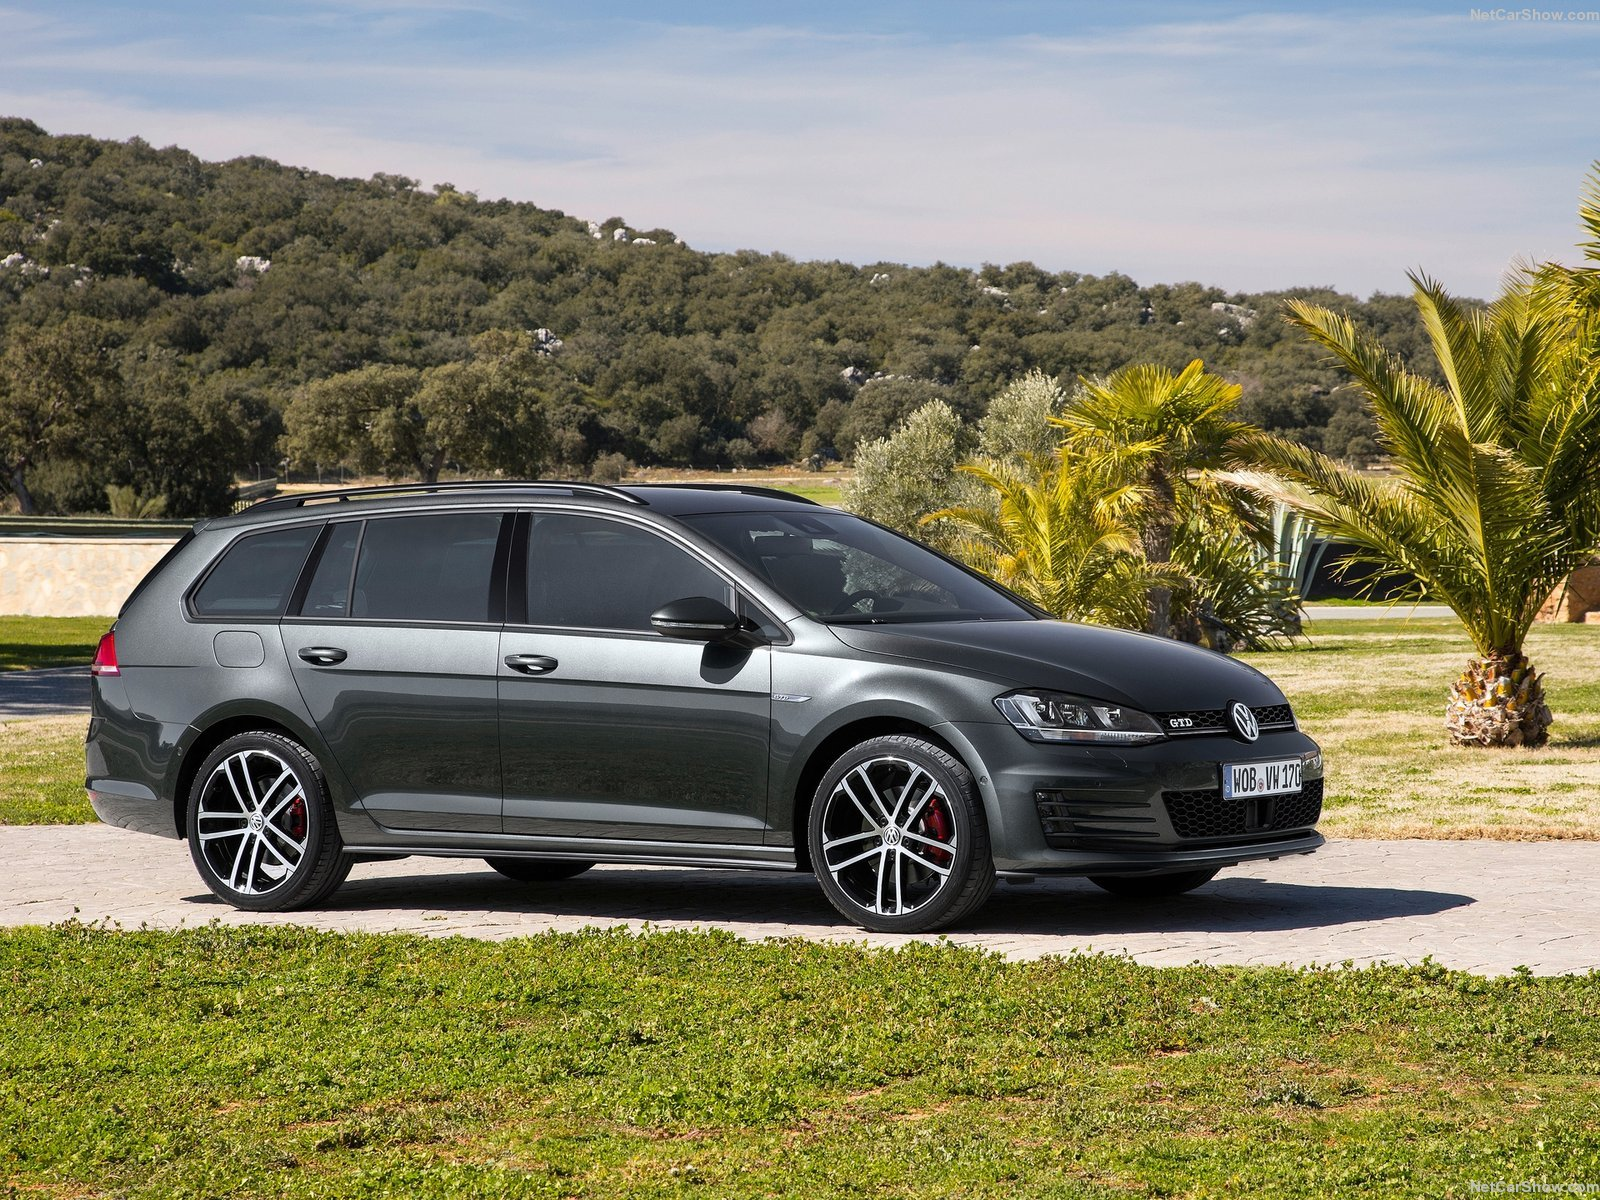 volkswagen golf gtd variant cars diesel wagon 2015 wallpaper 1600x1200 663311 wallpaperup. Black Bedroom Furniture Sets. Home Design Ideas